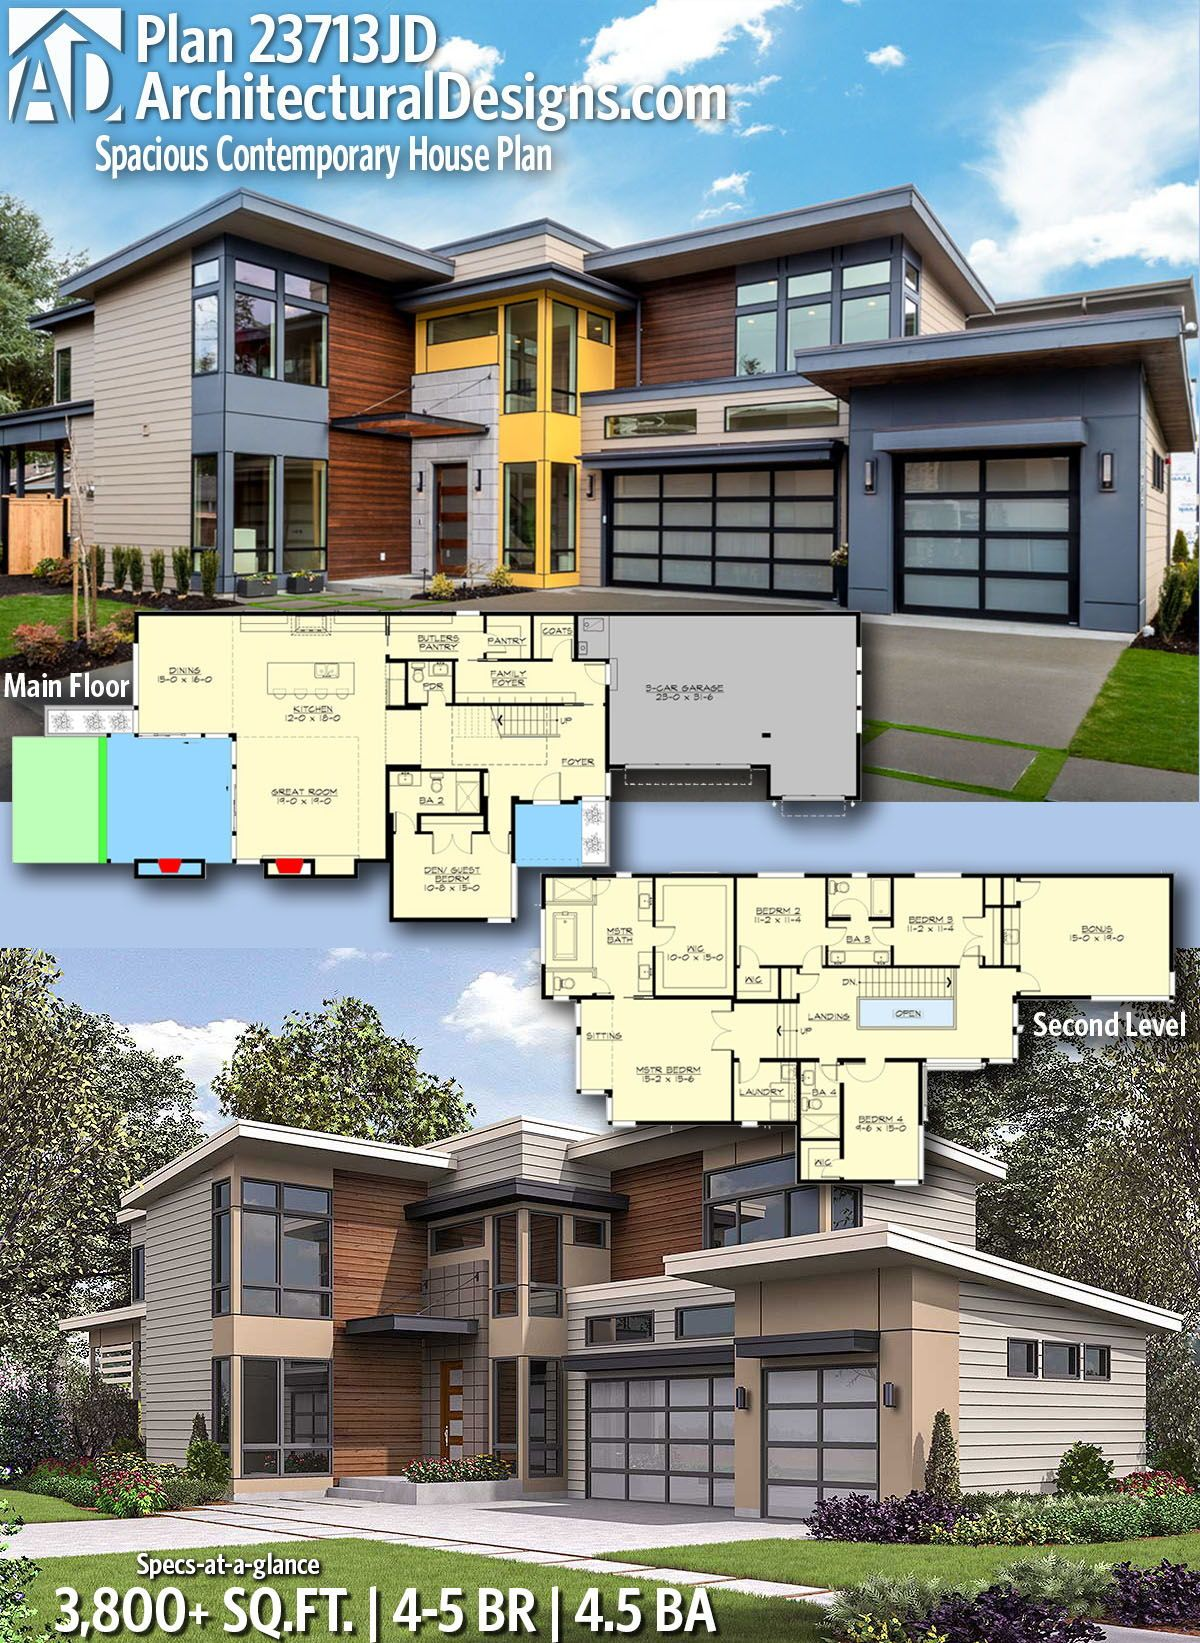 Plan 23713jd Spacious Contemporary House Plan In 2020 Contemporary House Plans Modern House Floor Plans Contemporary House